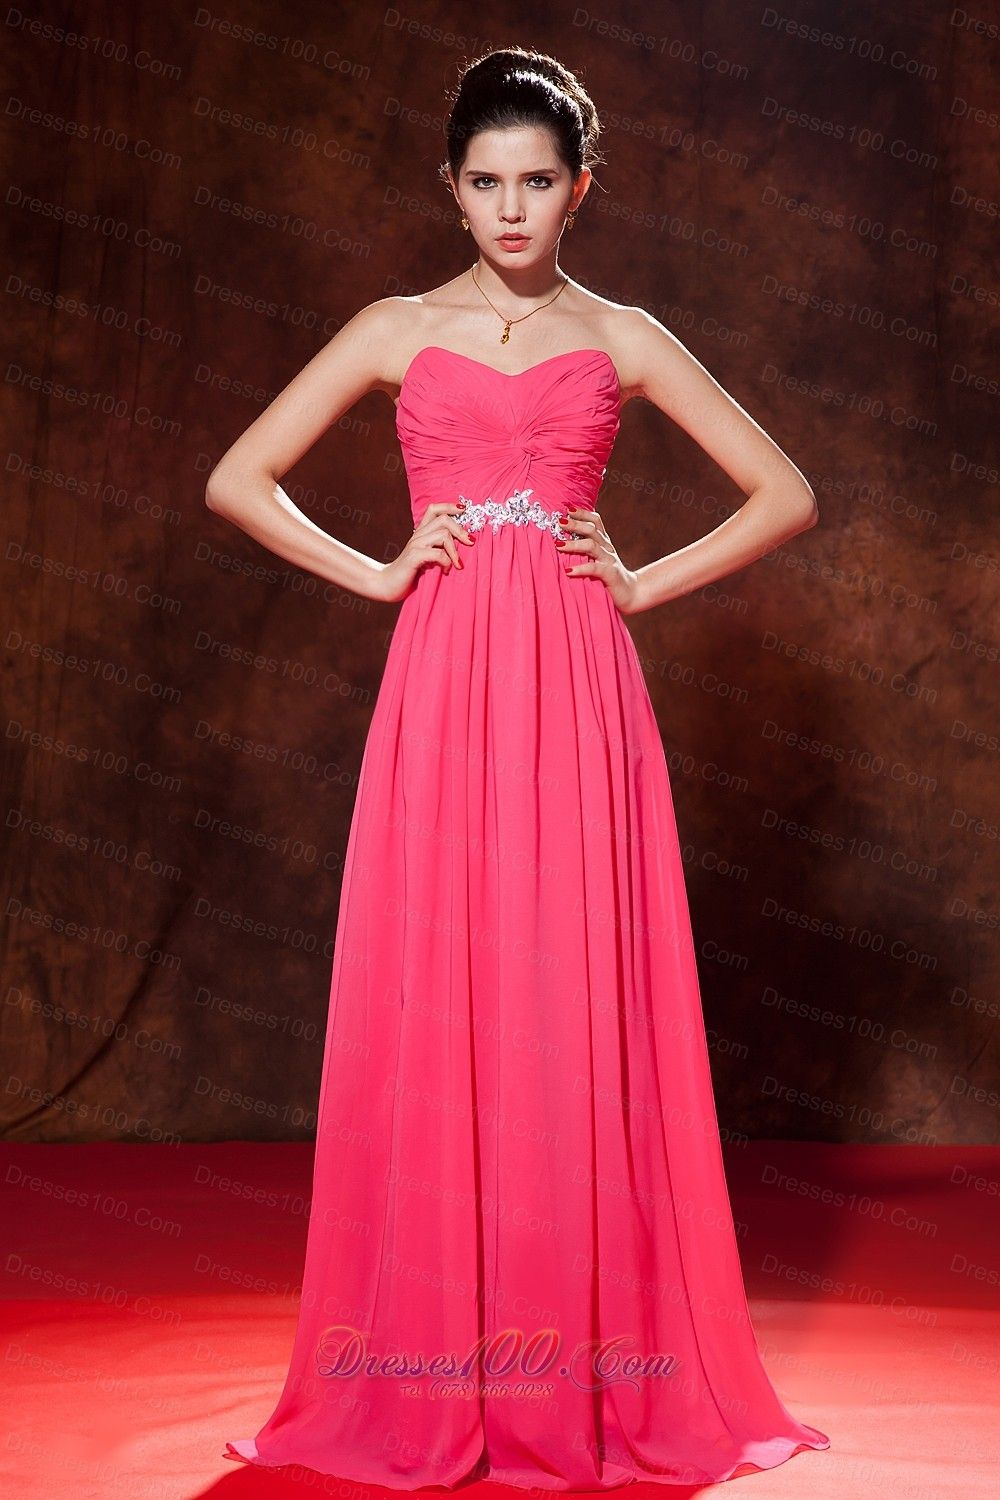 Wellpackaged pageant dresses in jackson wellpackaged pageant